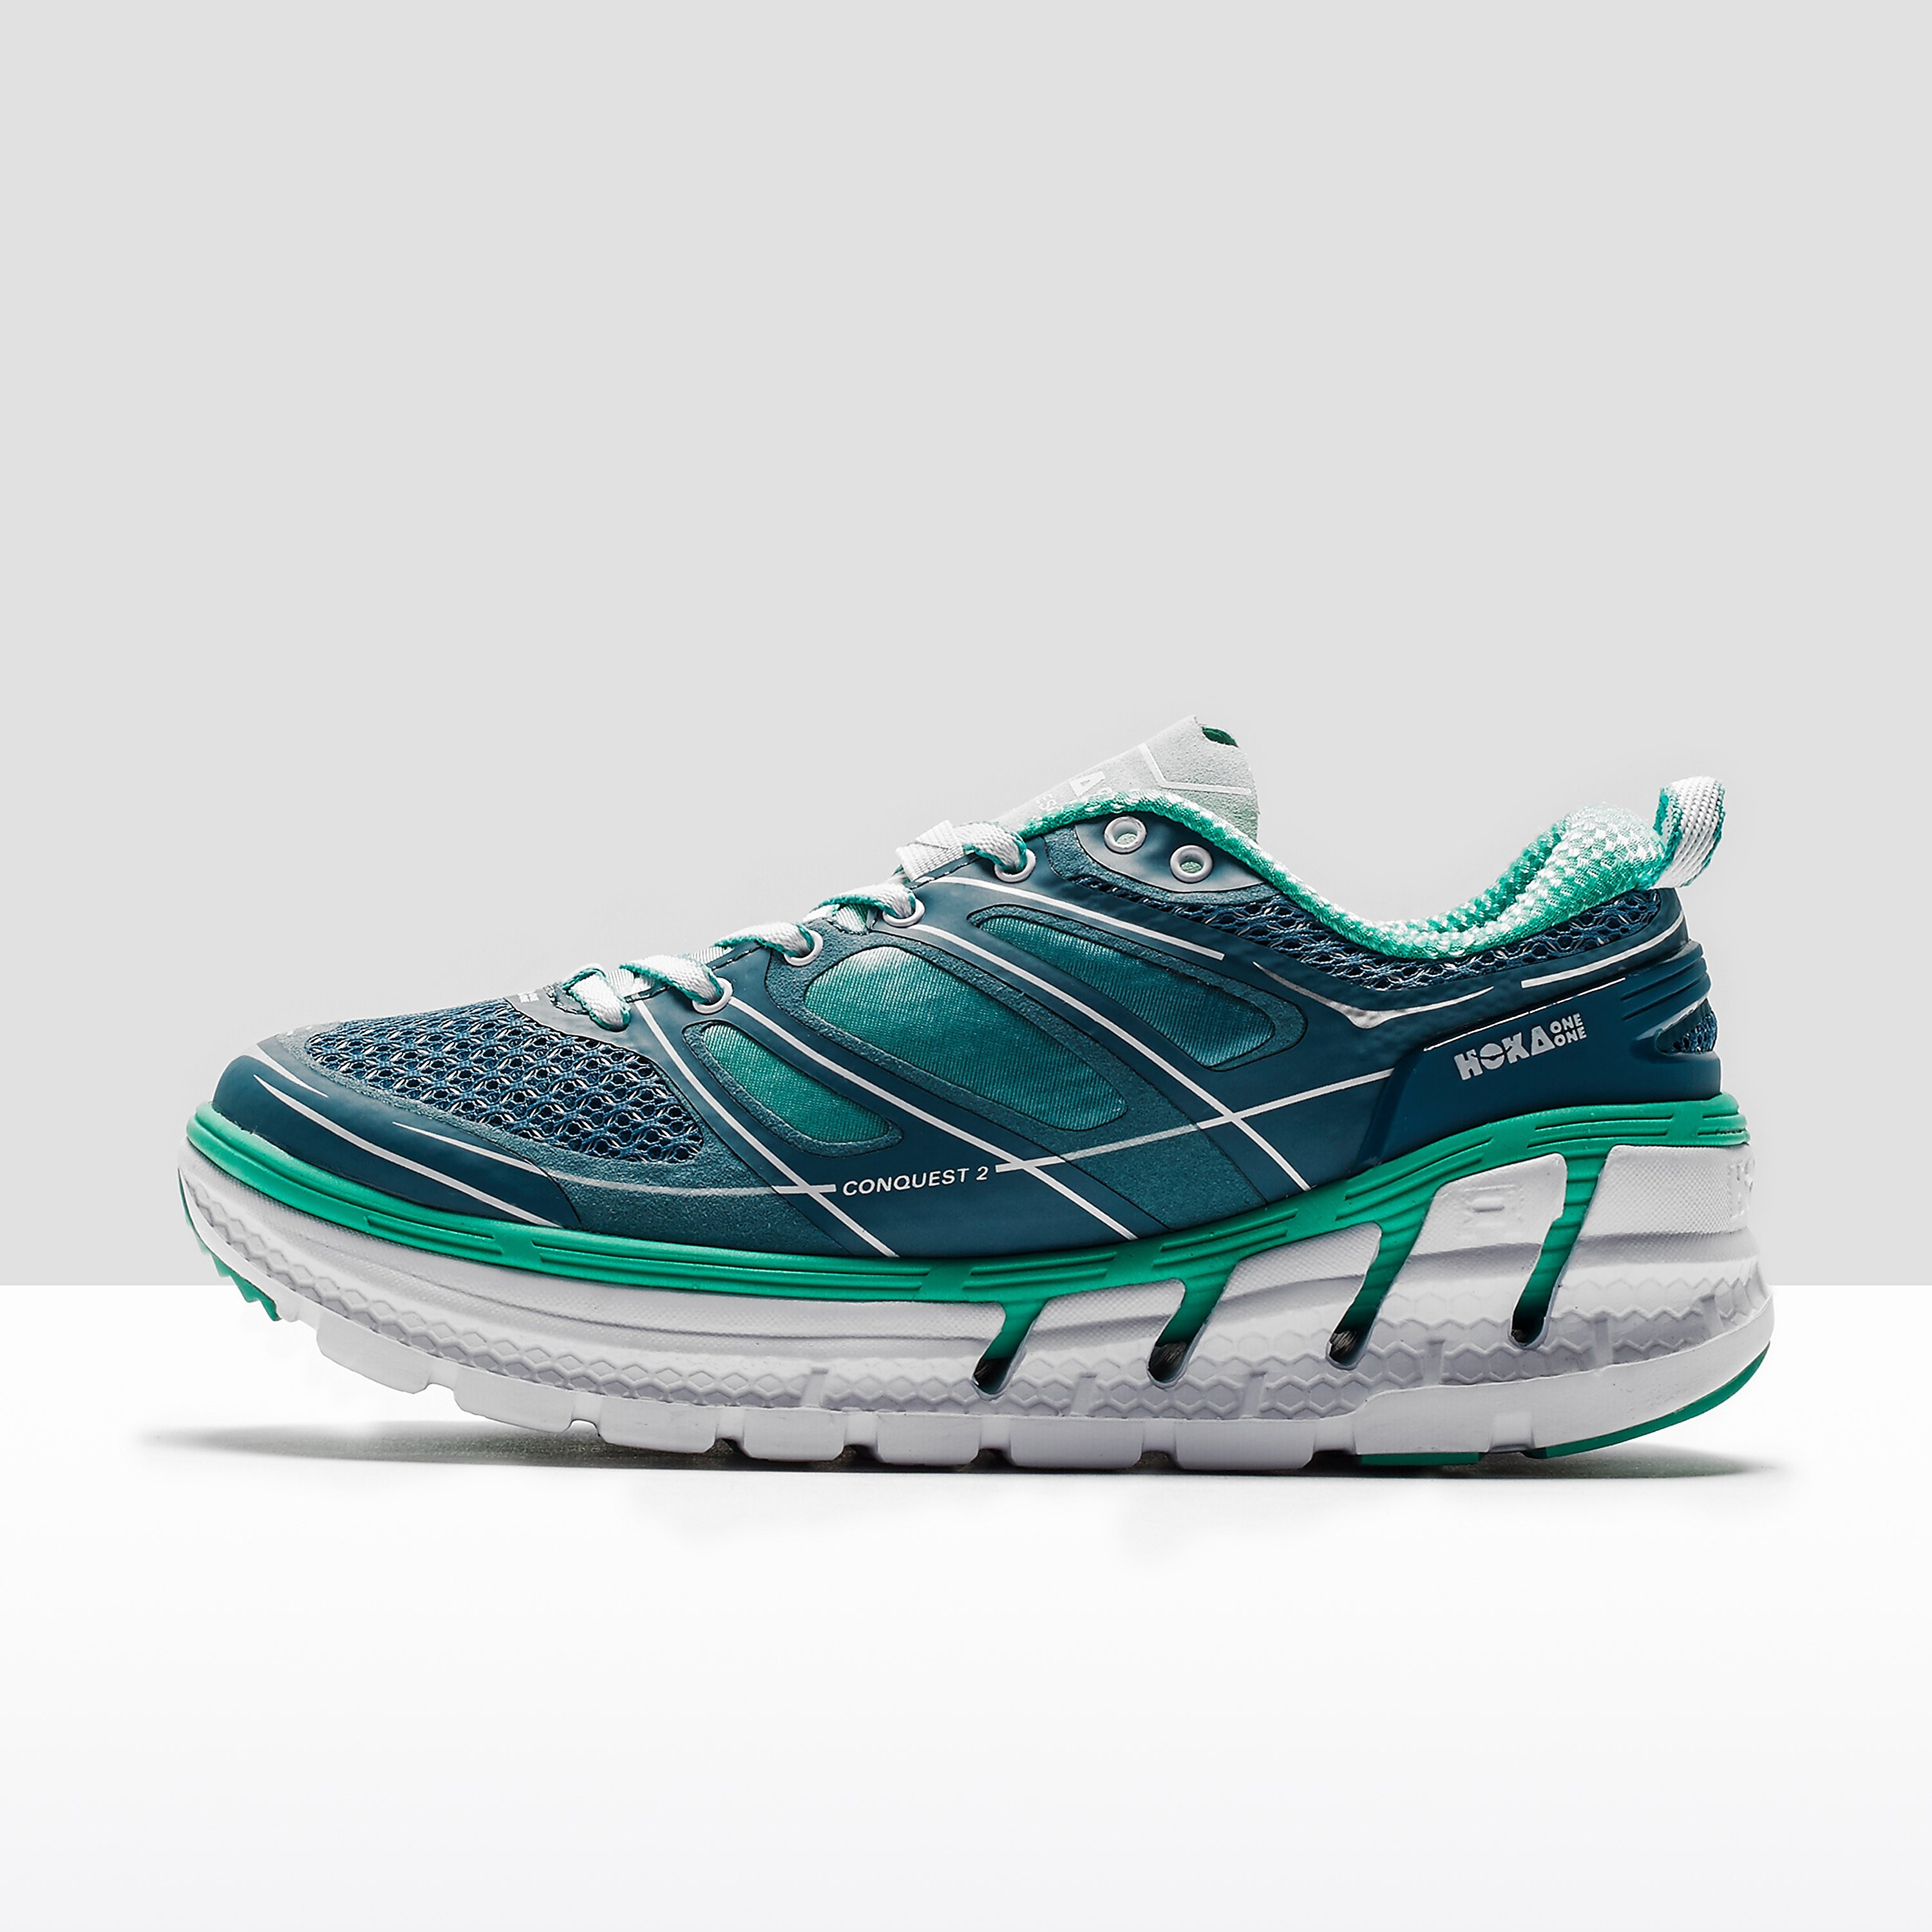 Hoka One One Conquest 2 Women's Running Shoe